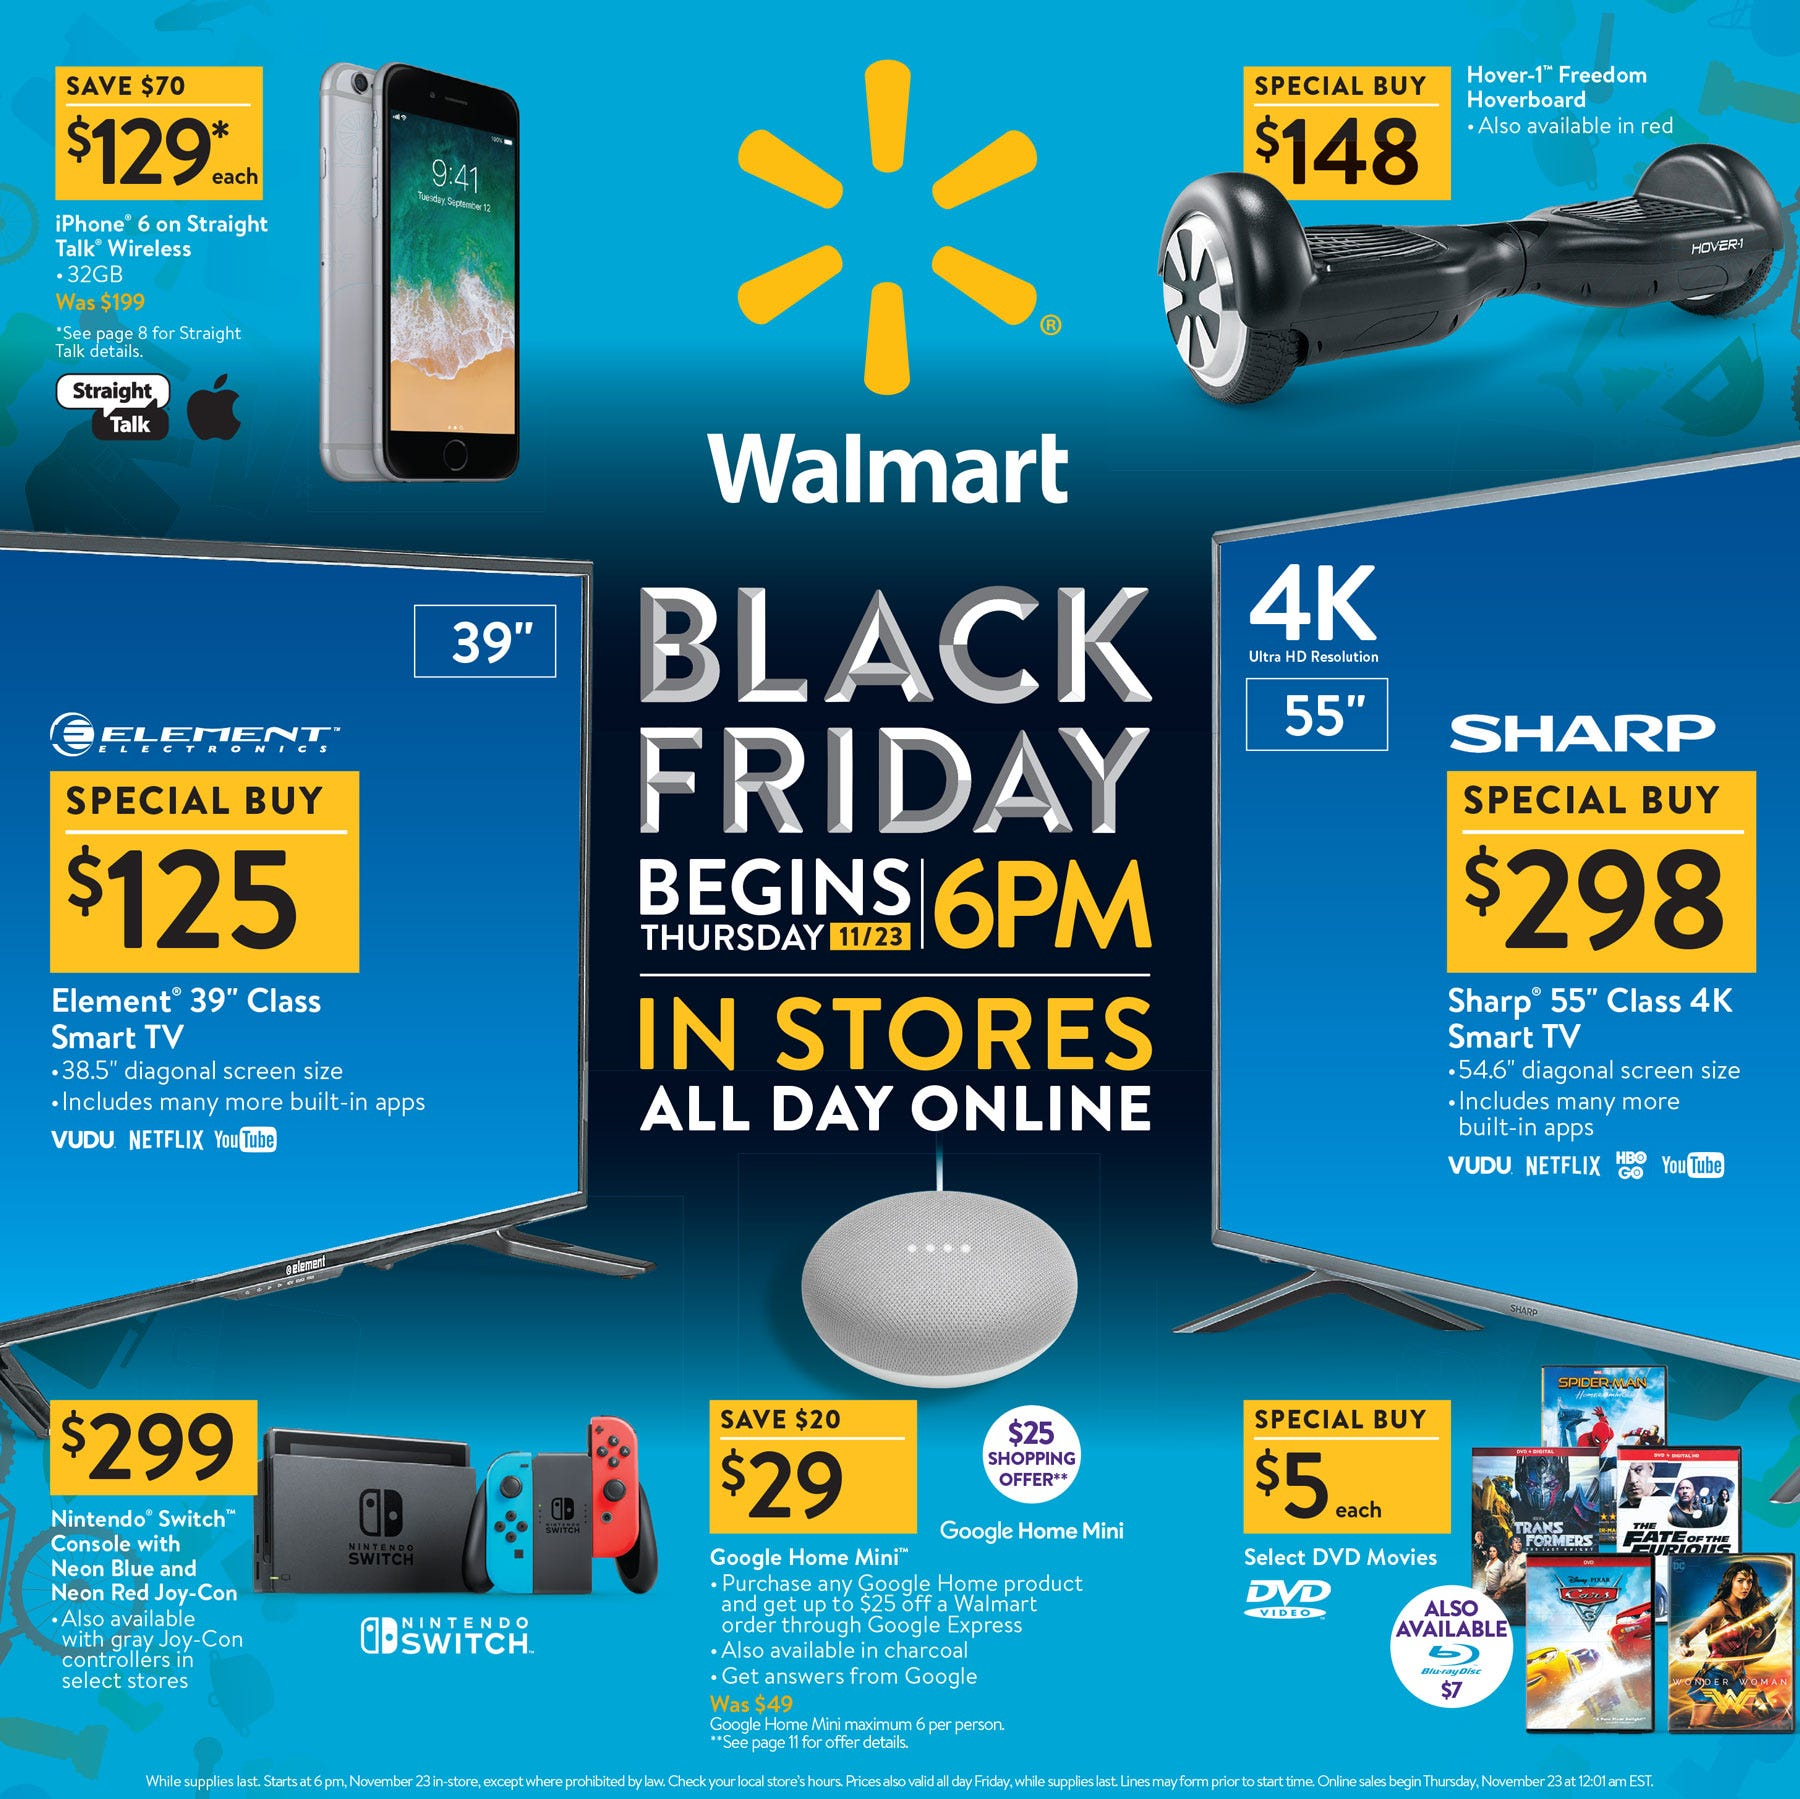 Black Friday 2017 Walmart Target Best Buy ads are out